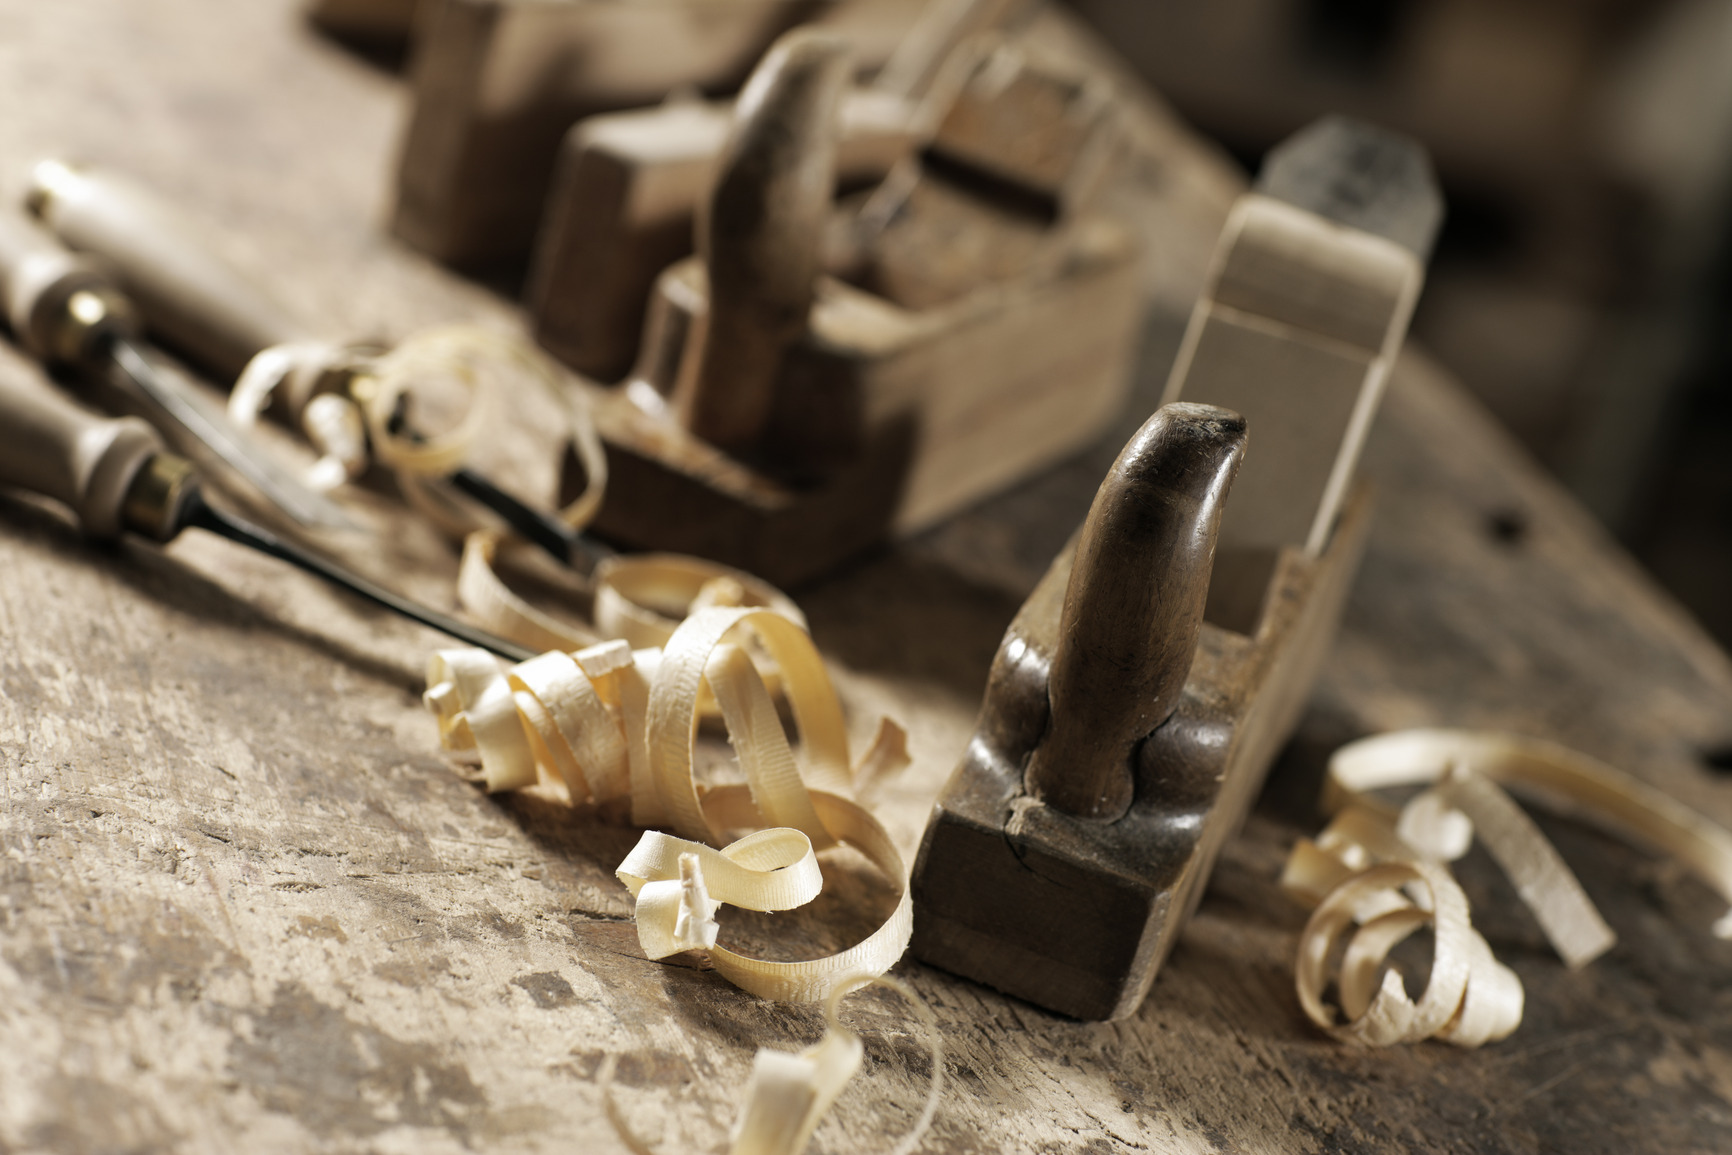 ... Up a Shop with Woodworking Hand Tools - Popular Woodworking Magazine